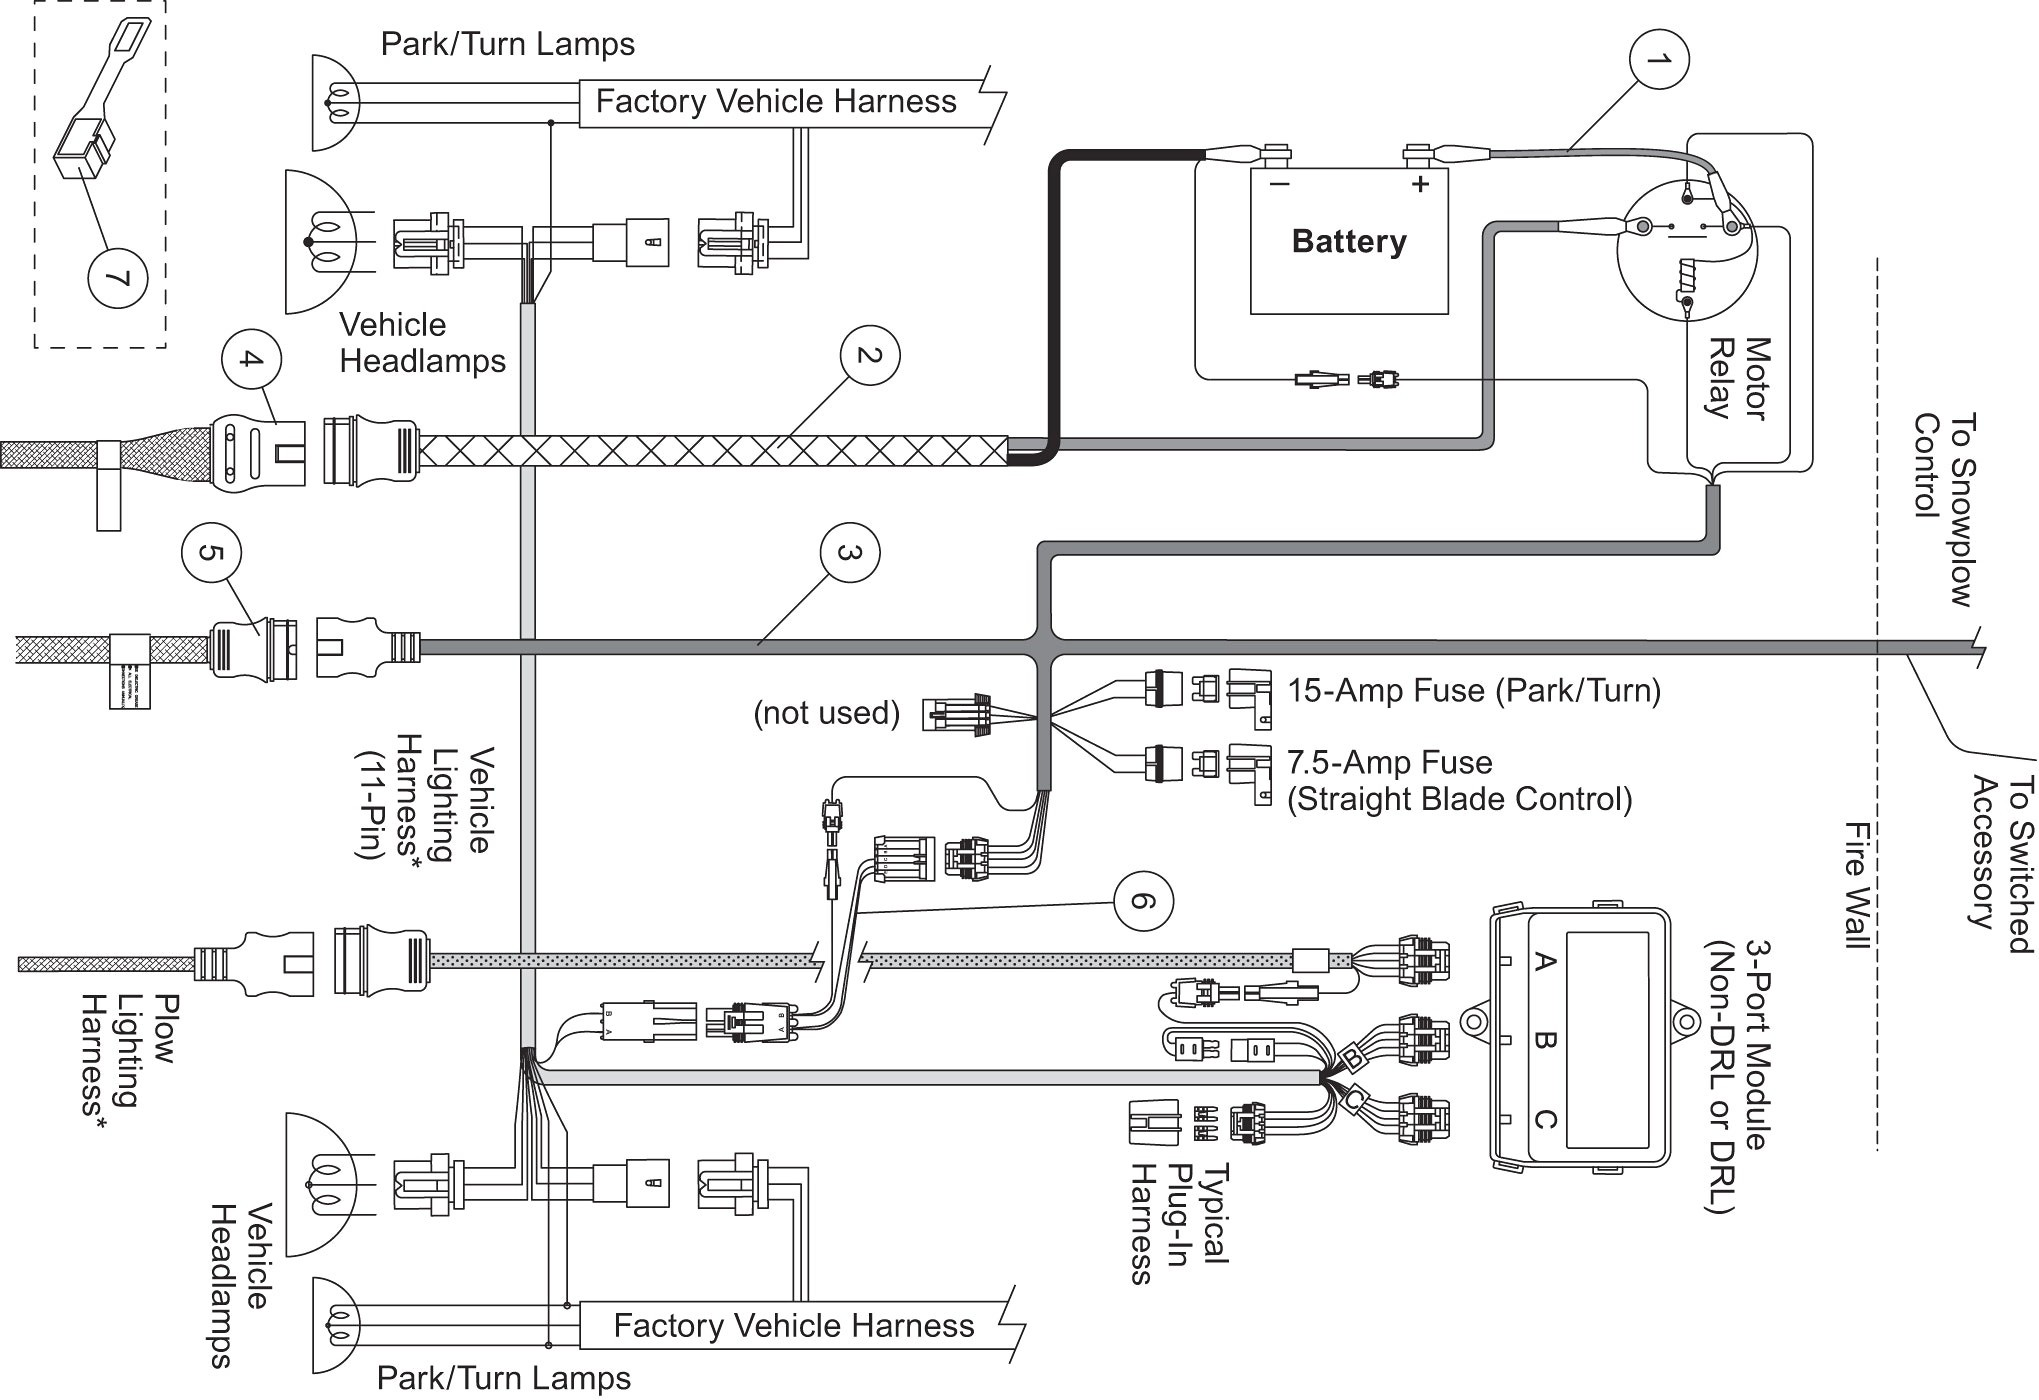 Meyer Plow Wiring Diagram Smith Brothers Services And Meyer Snow Fisher V Plow  Wiring Diagram Meyer Plow Wiring Diagram Smith